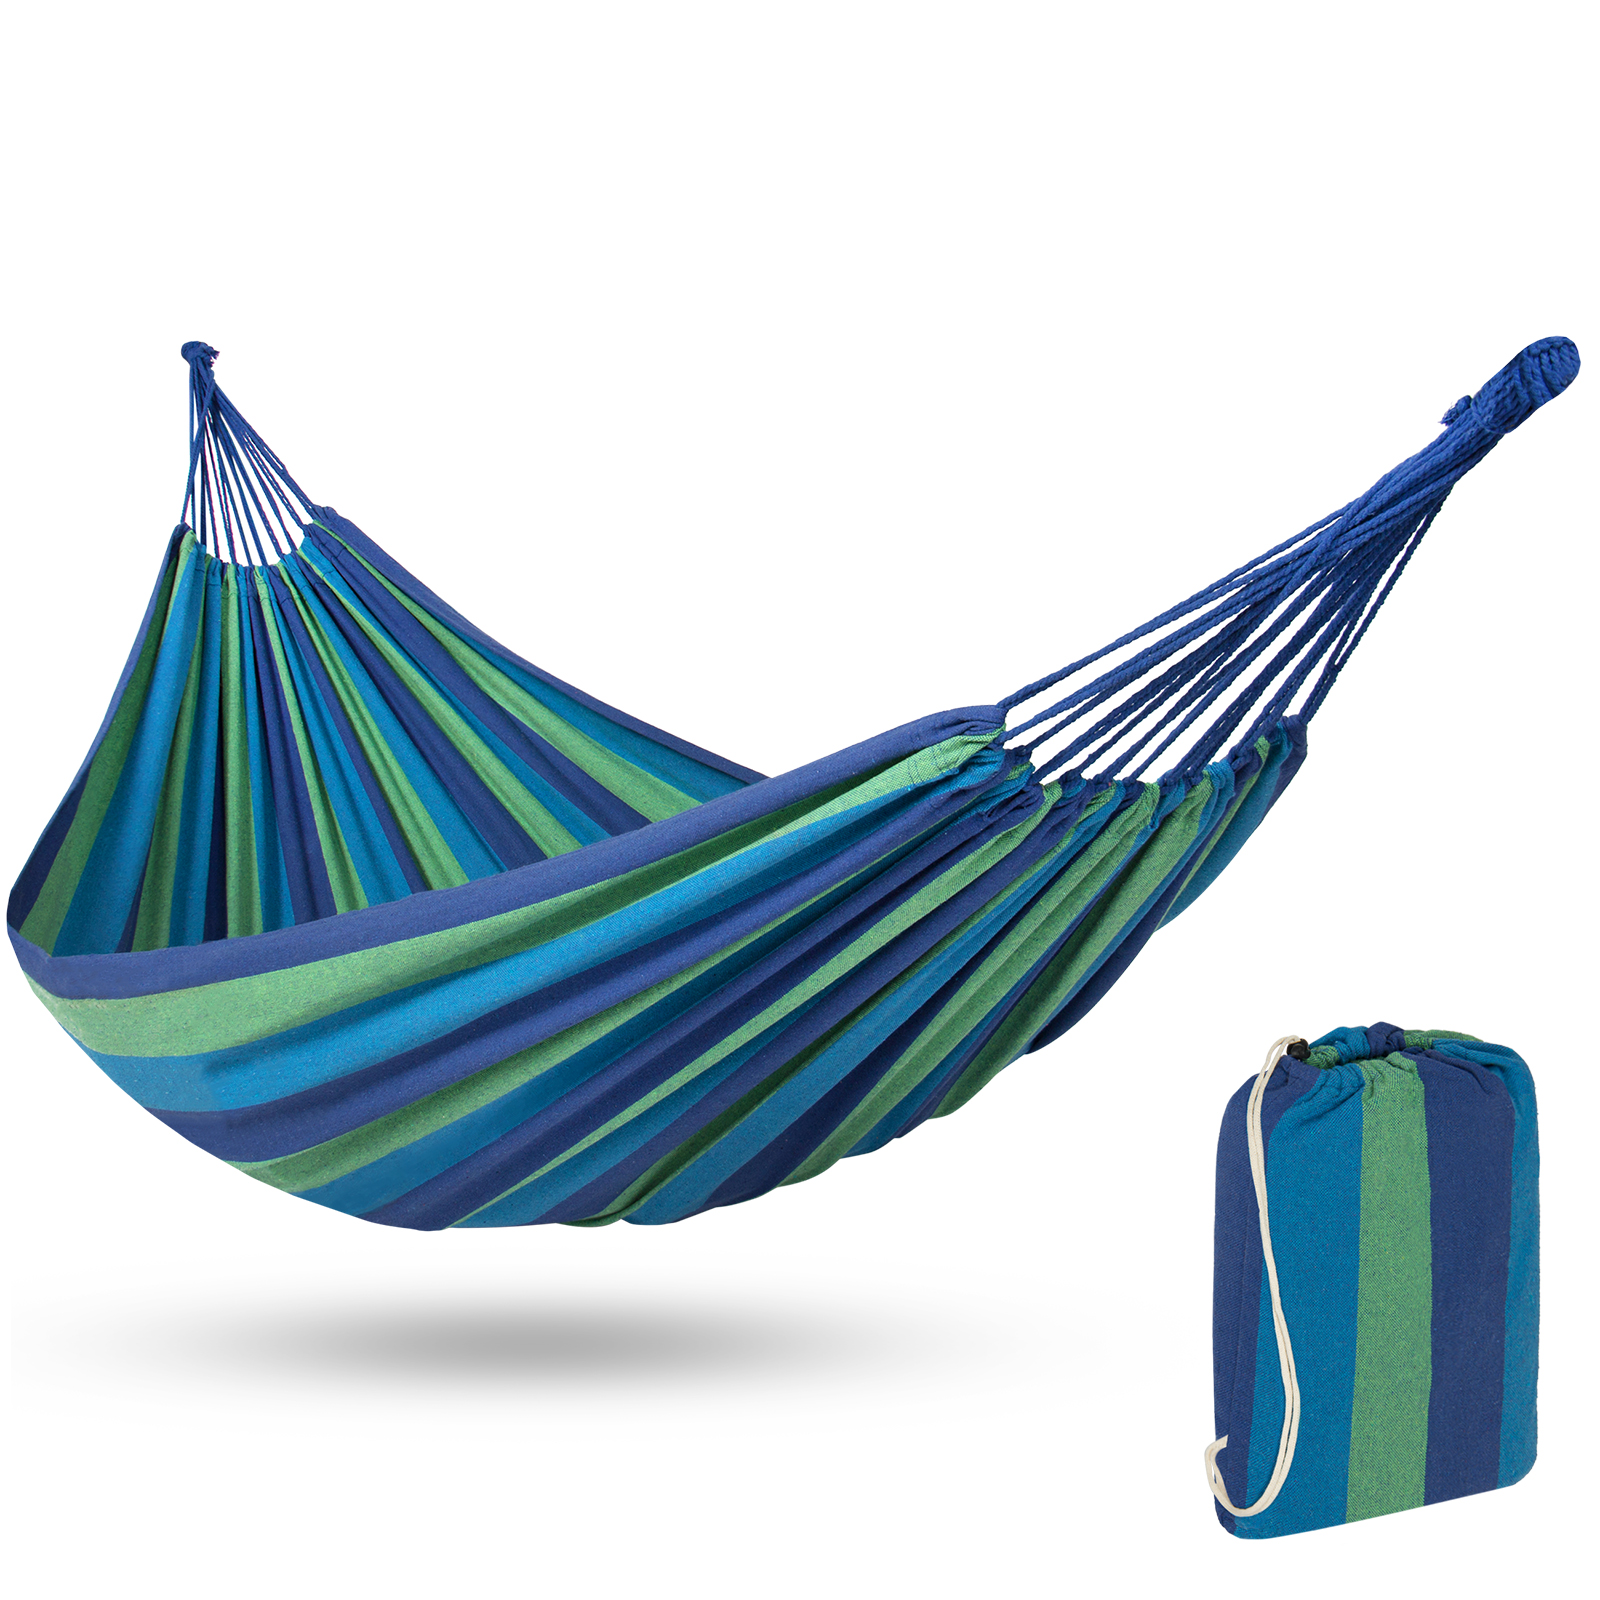 best choice products portable cotton brazilian double hammock bed 2 person patio camping w  best choice products portable cotton brazilian double hammock bed      rh   walmart